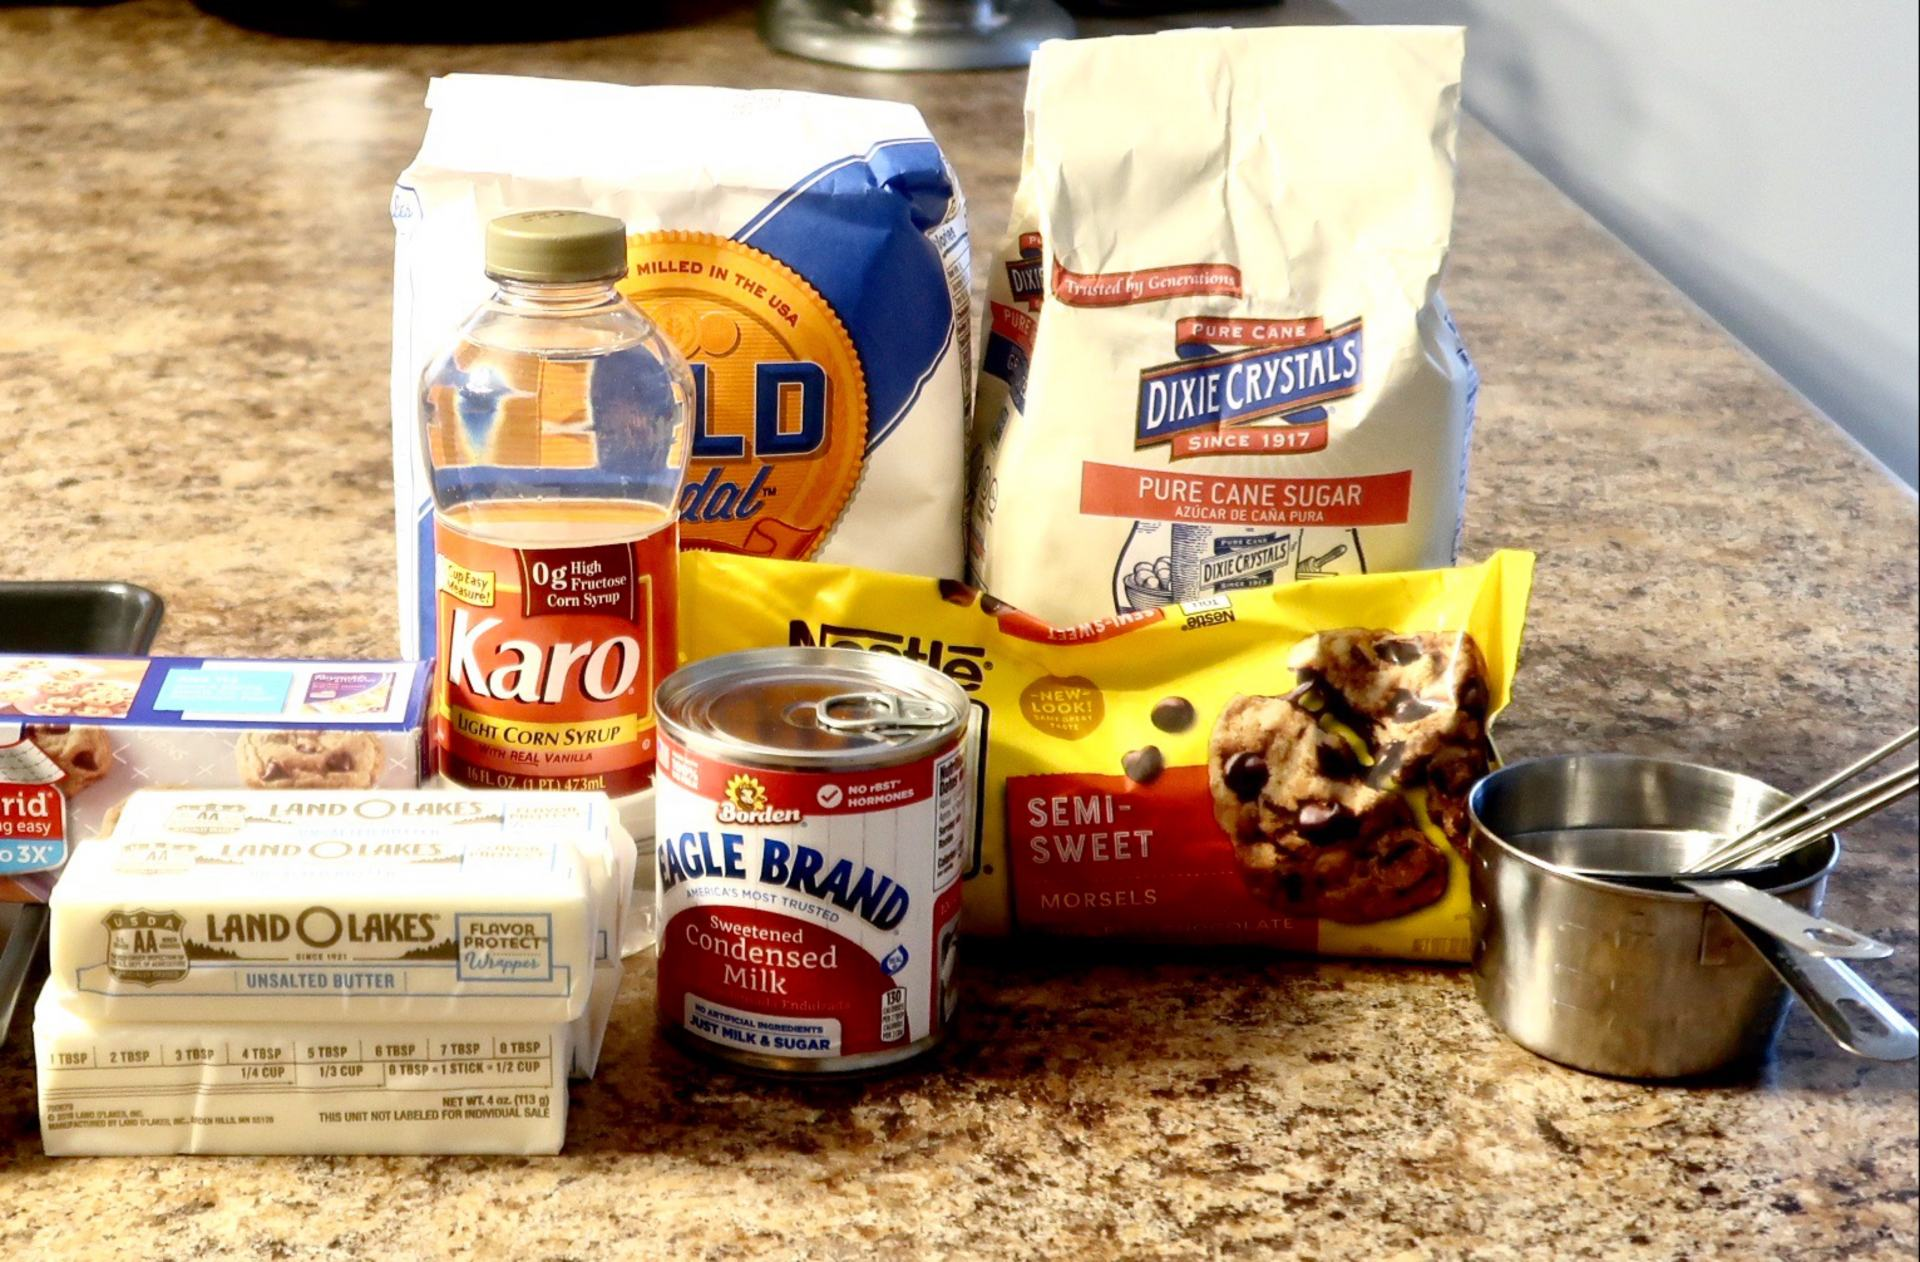 Ingredients for the Millionaire Bar recipe